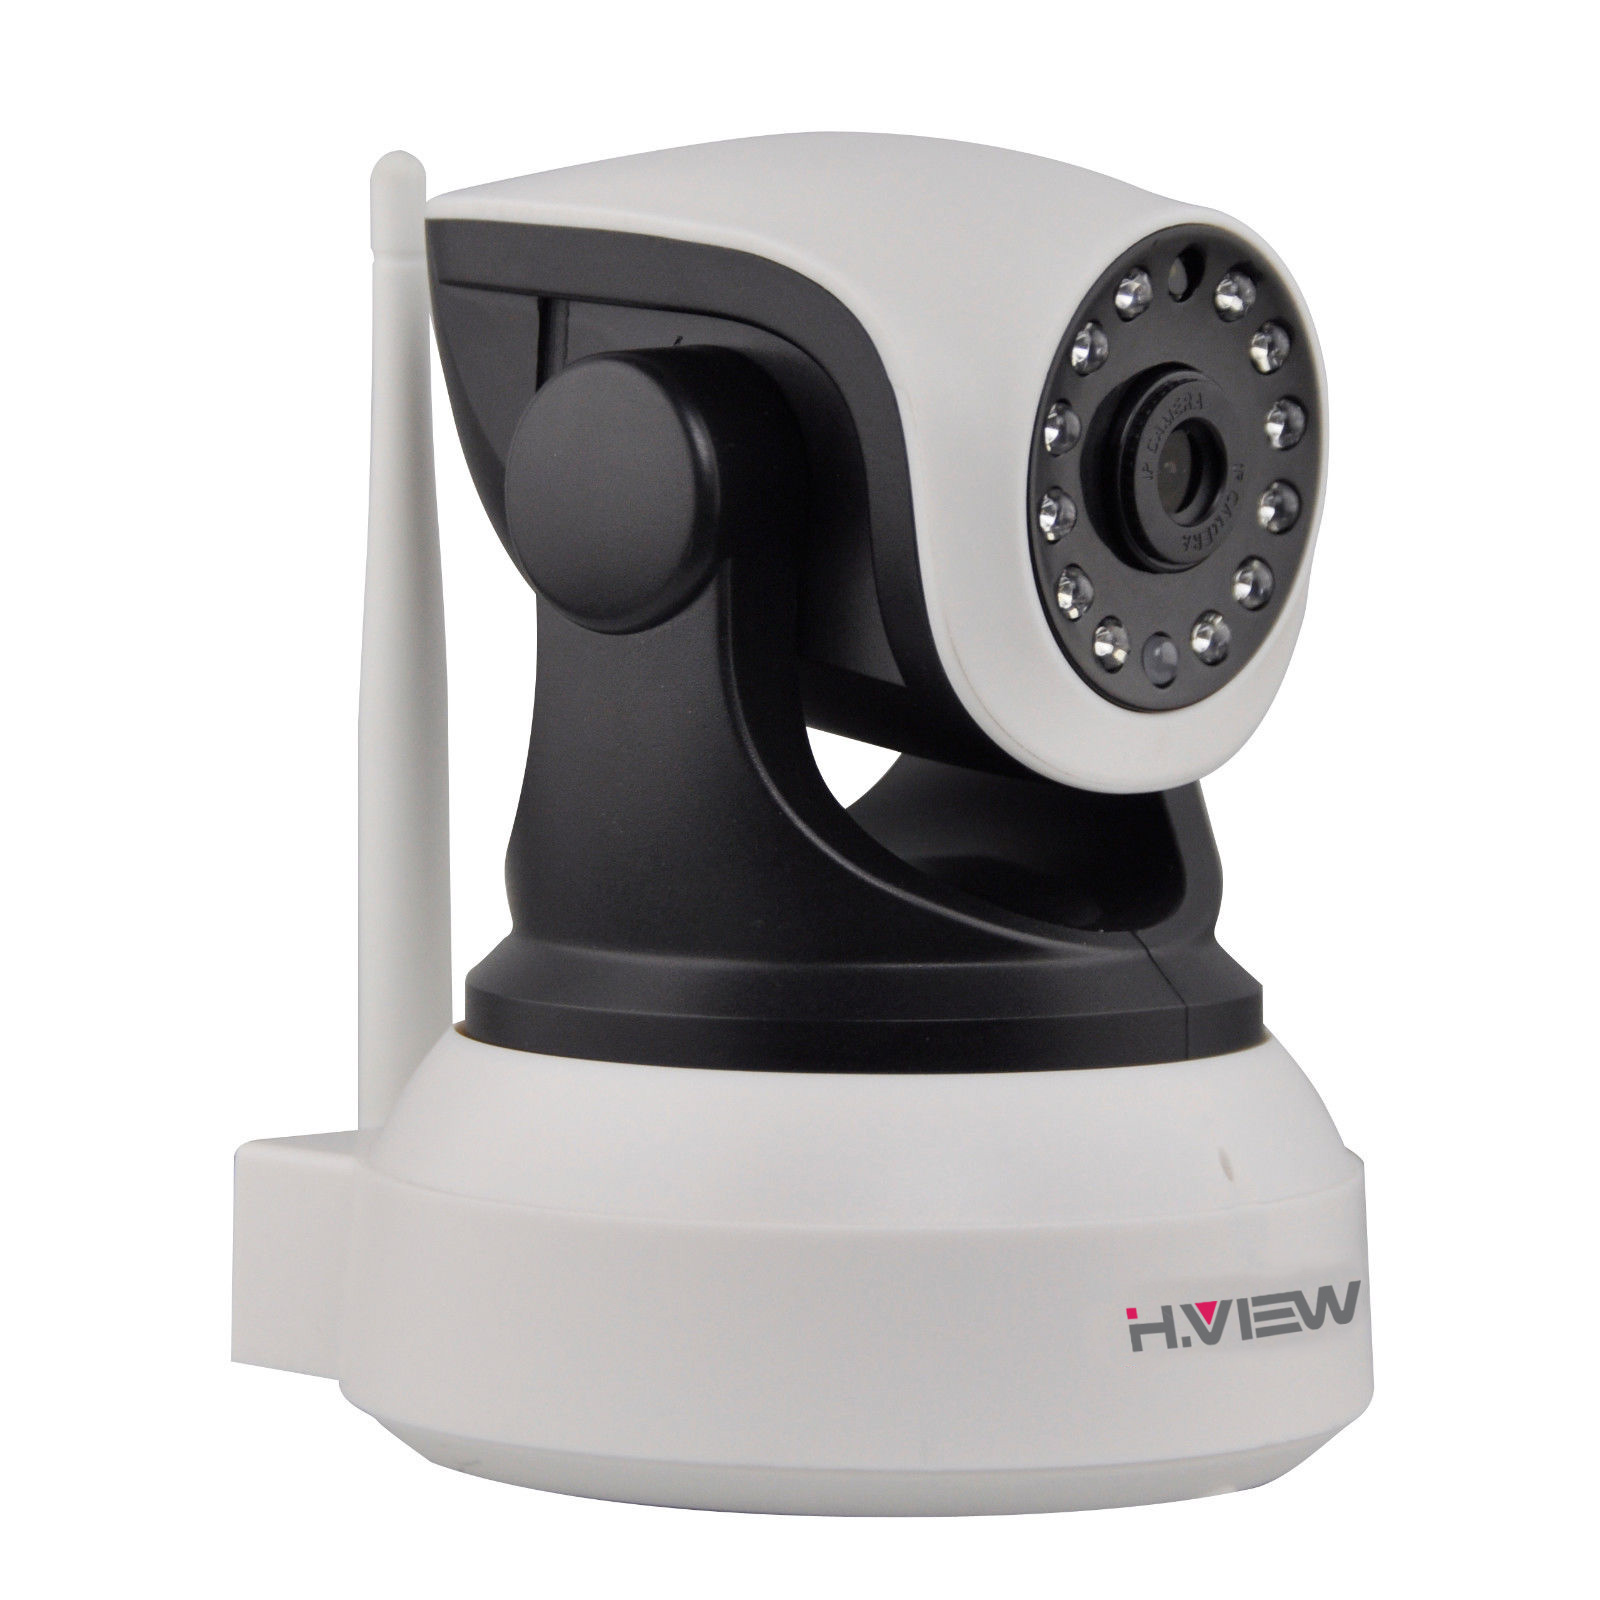 H.View WiFi Wireless 720P IP Camera WiFi IP Camera Two Way Audio Baby Monitor Pan Tilt Security Camera Easy QR CODE Scan Connect